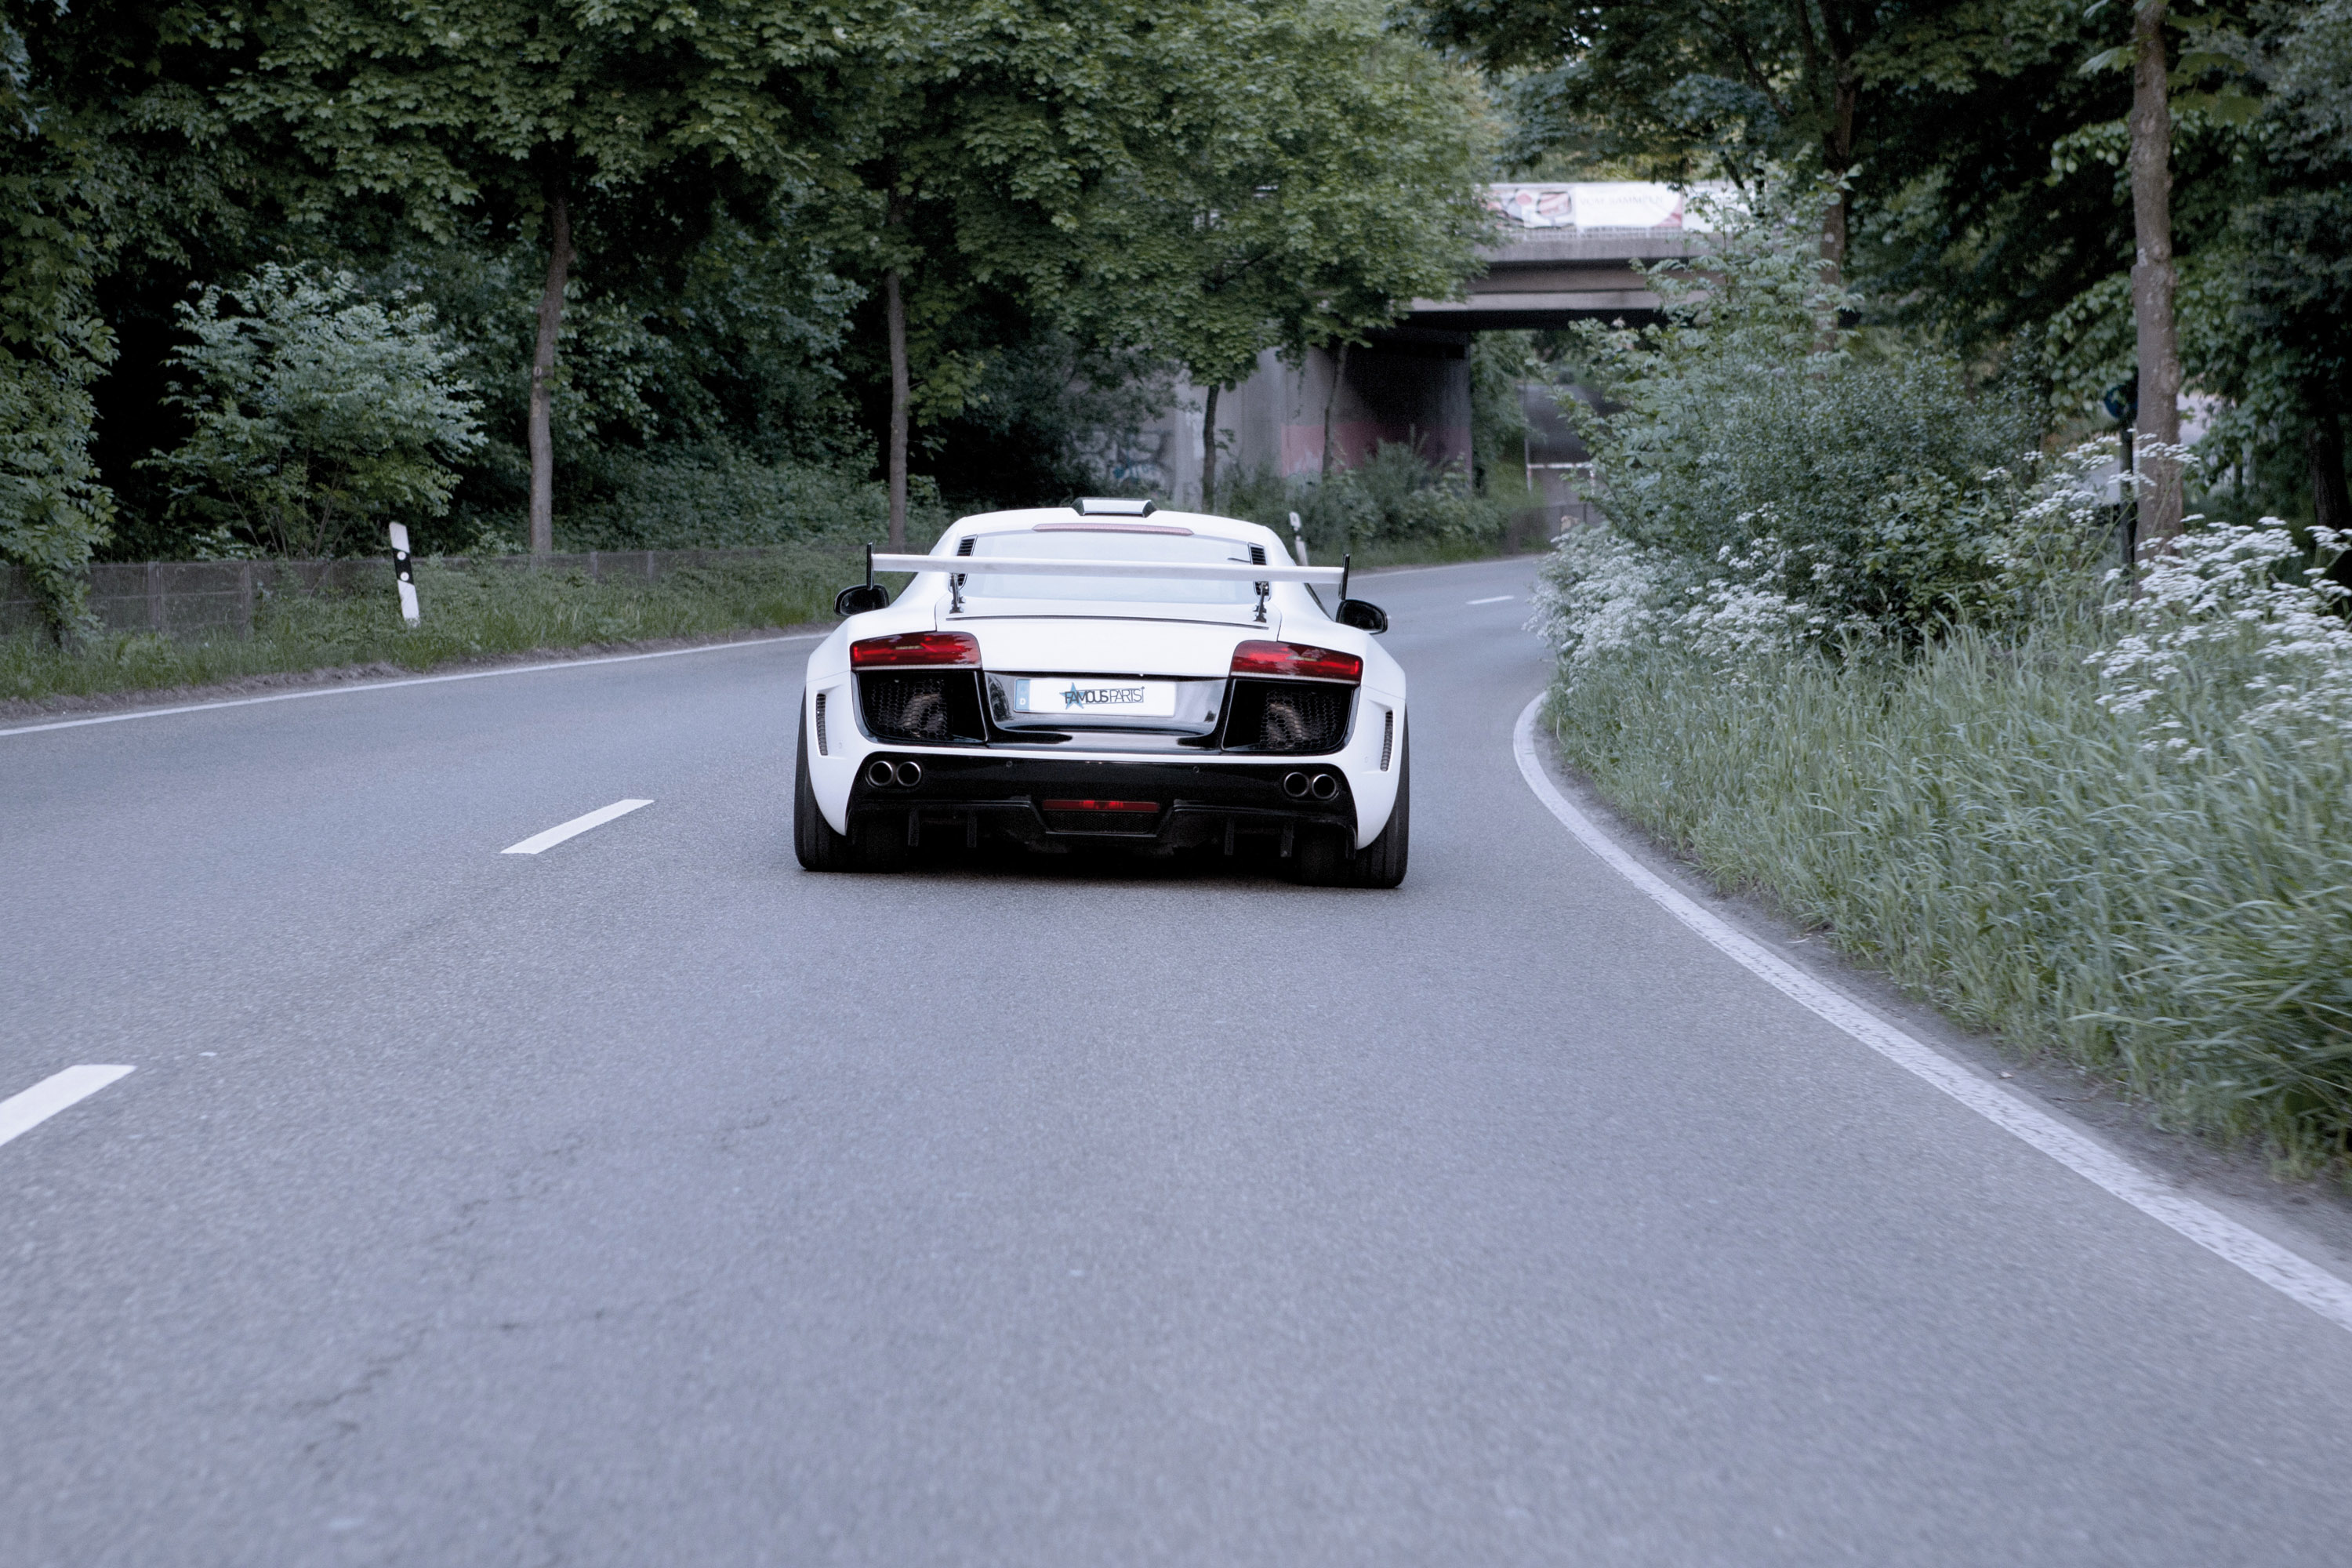 famous sport aratorn hd parts gt amazing cars pictures wide audi body pd lovely of